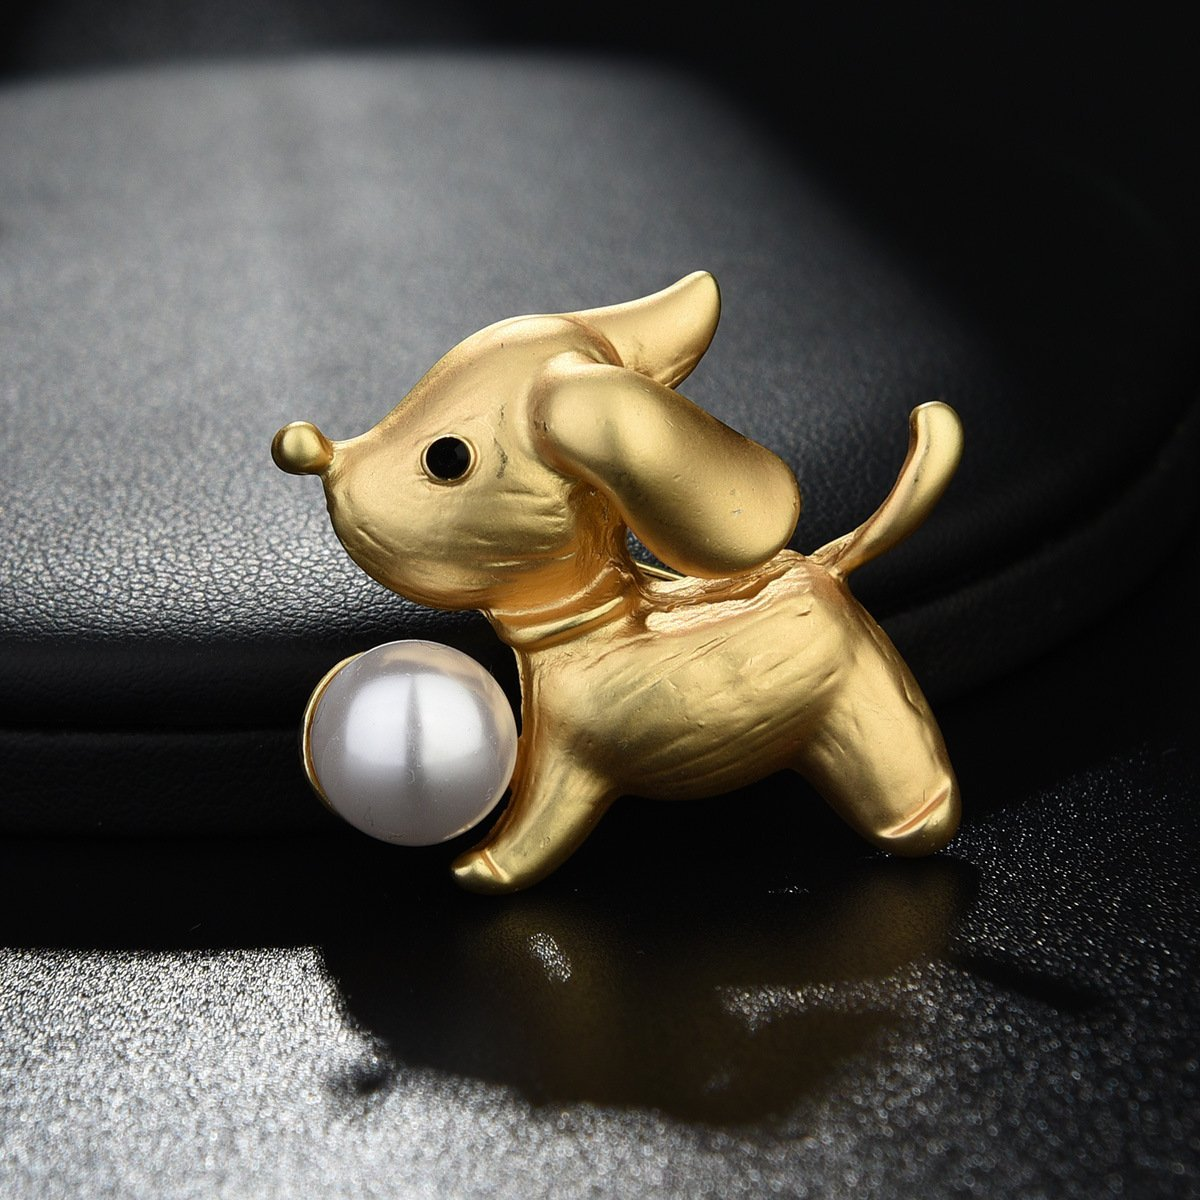 Get Quotations Kercisbeauty Year Of Dog Cute Gold Brooch Pin With Pearl Delicate Collar Badge Perfect Gift